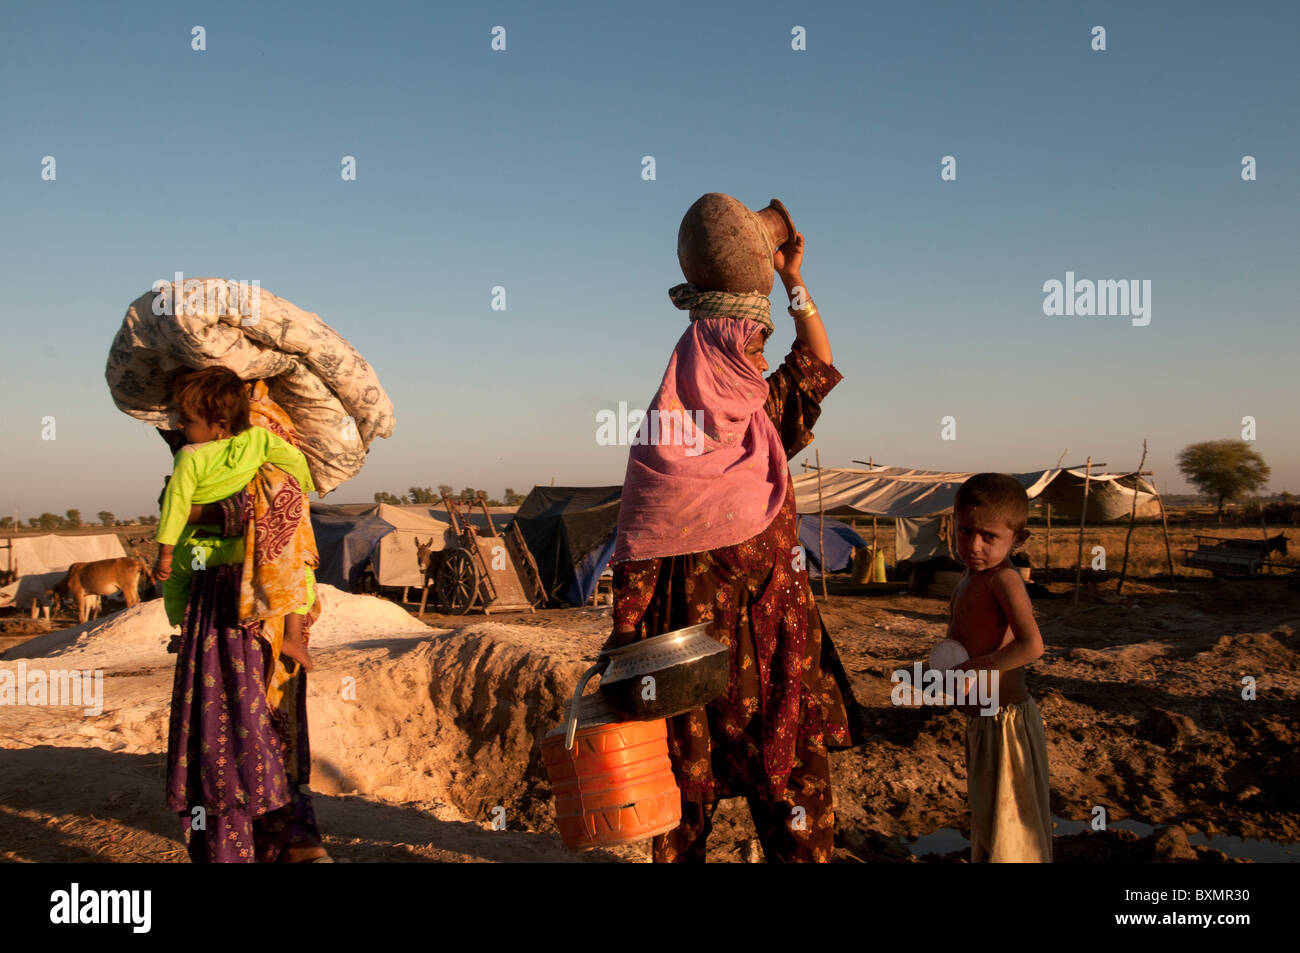 Sindh province Shaddat Kot .After the flood. Petrol station camp for displaced people.Two women walking with their - Stock Image